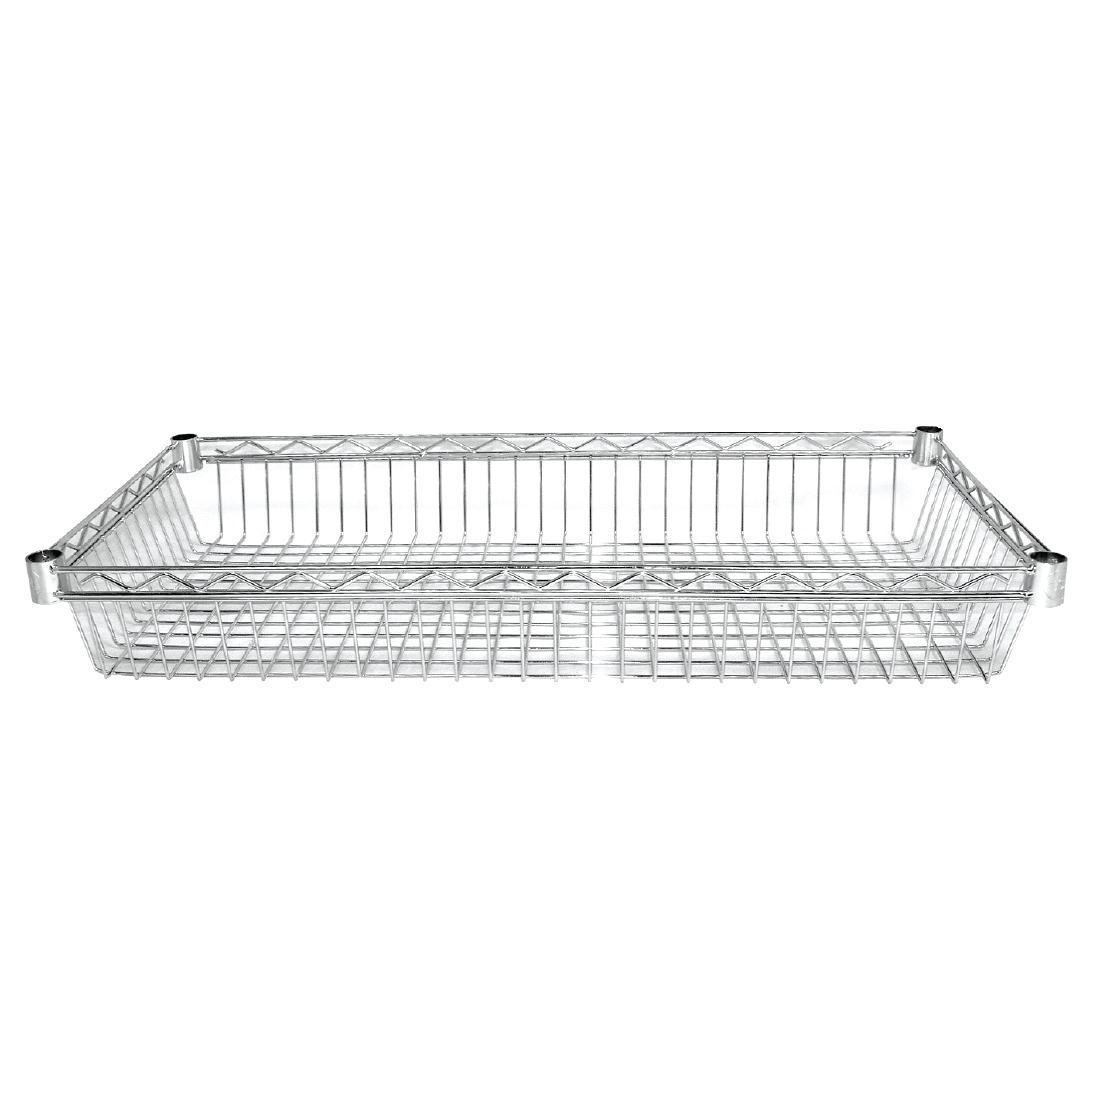 Vogue Chrome Baskets 915mm Pack of 2 - Y495